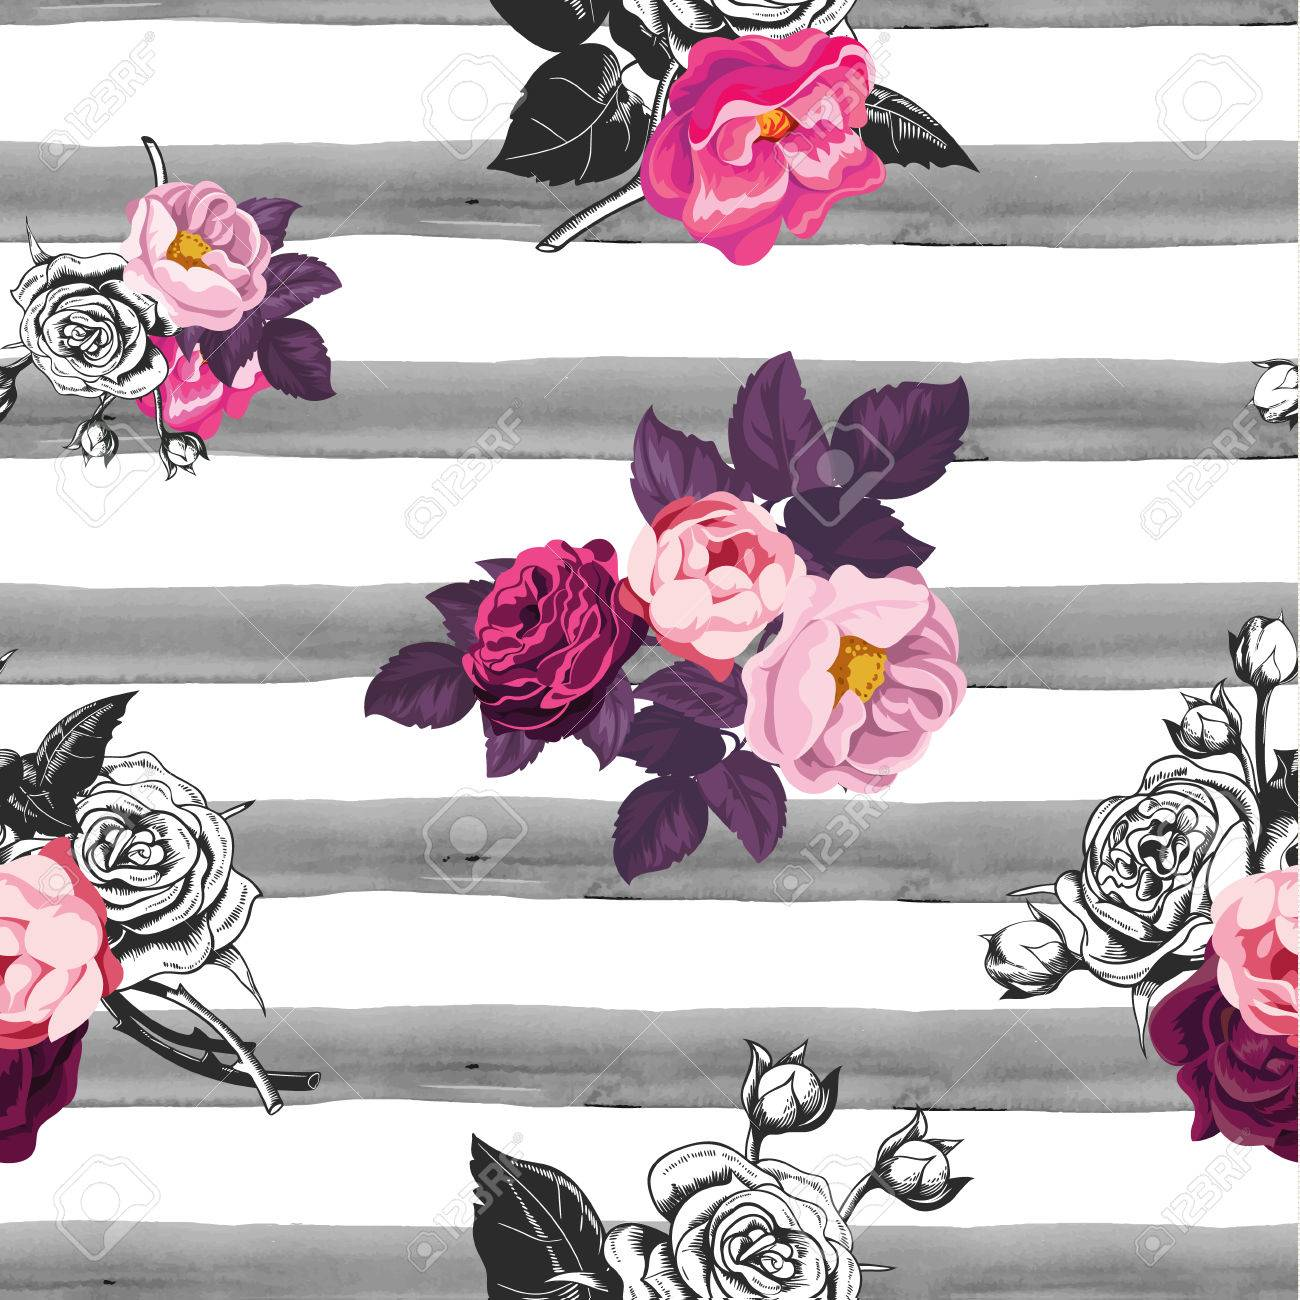 Floral Seamless Pattern With Half Colored Bunches Of Flowers